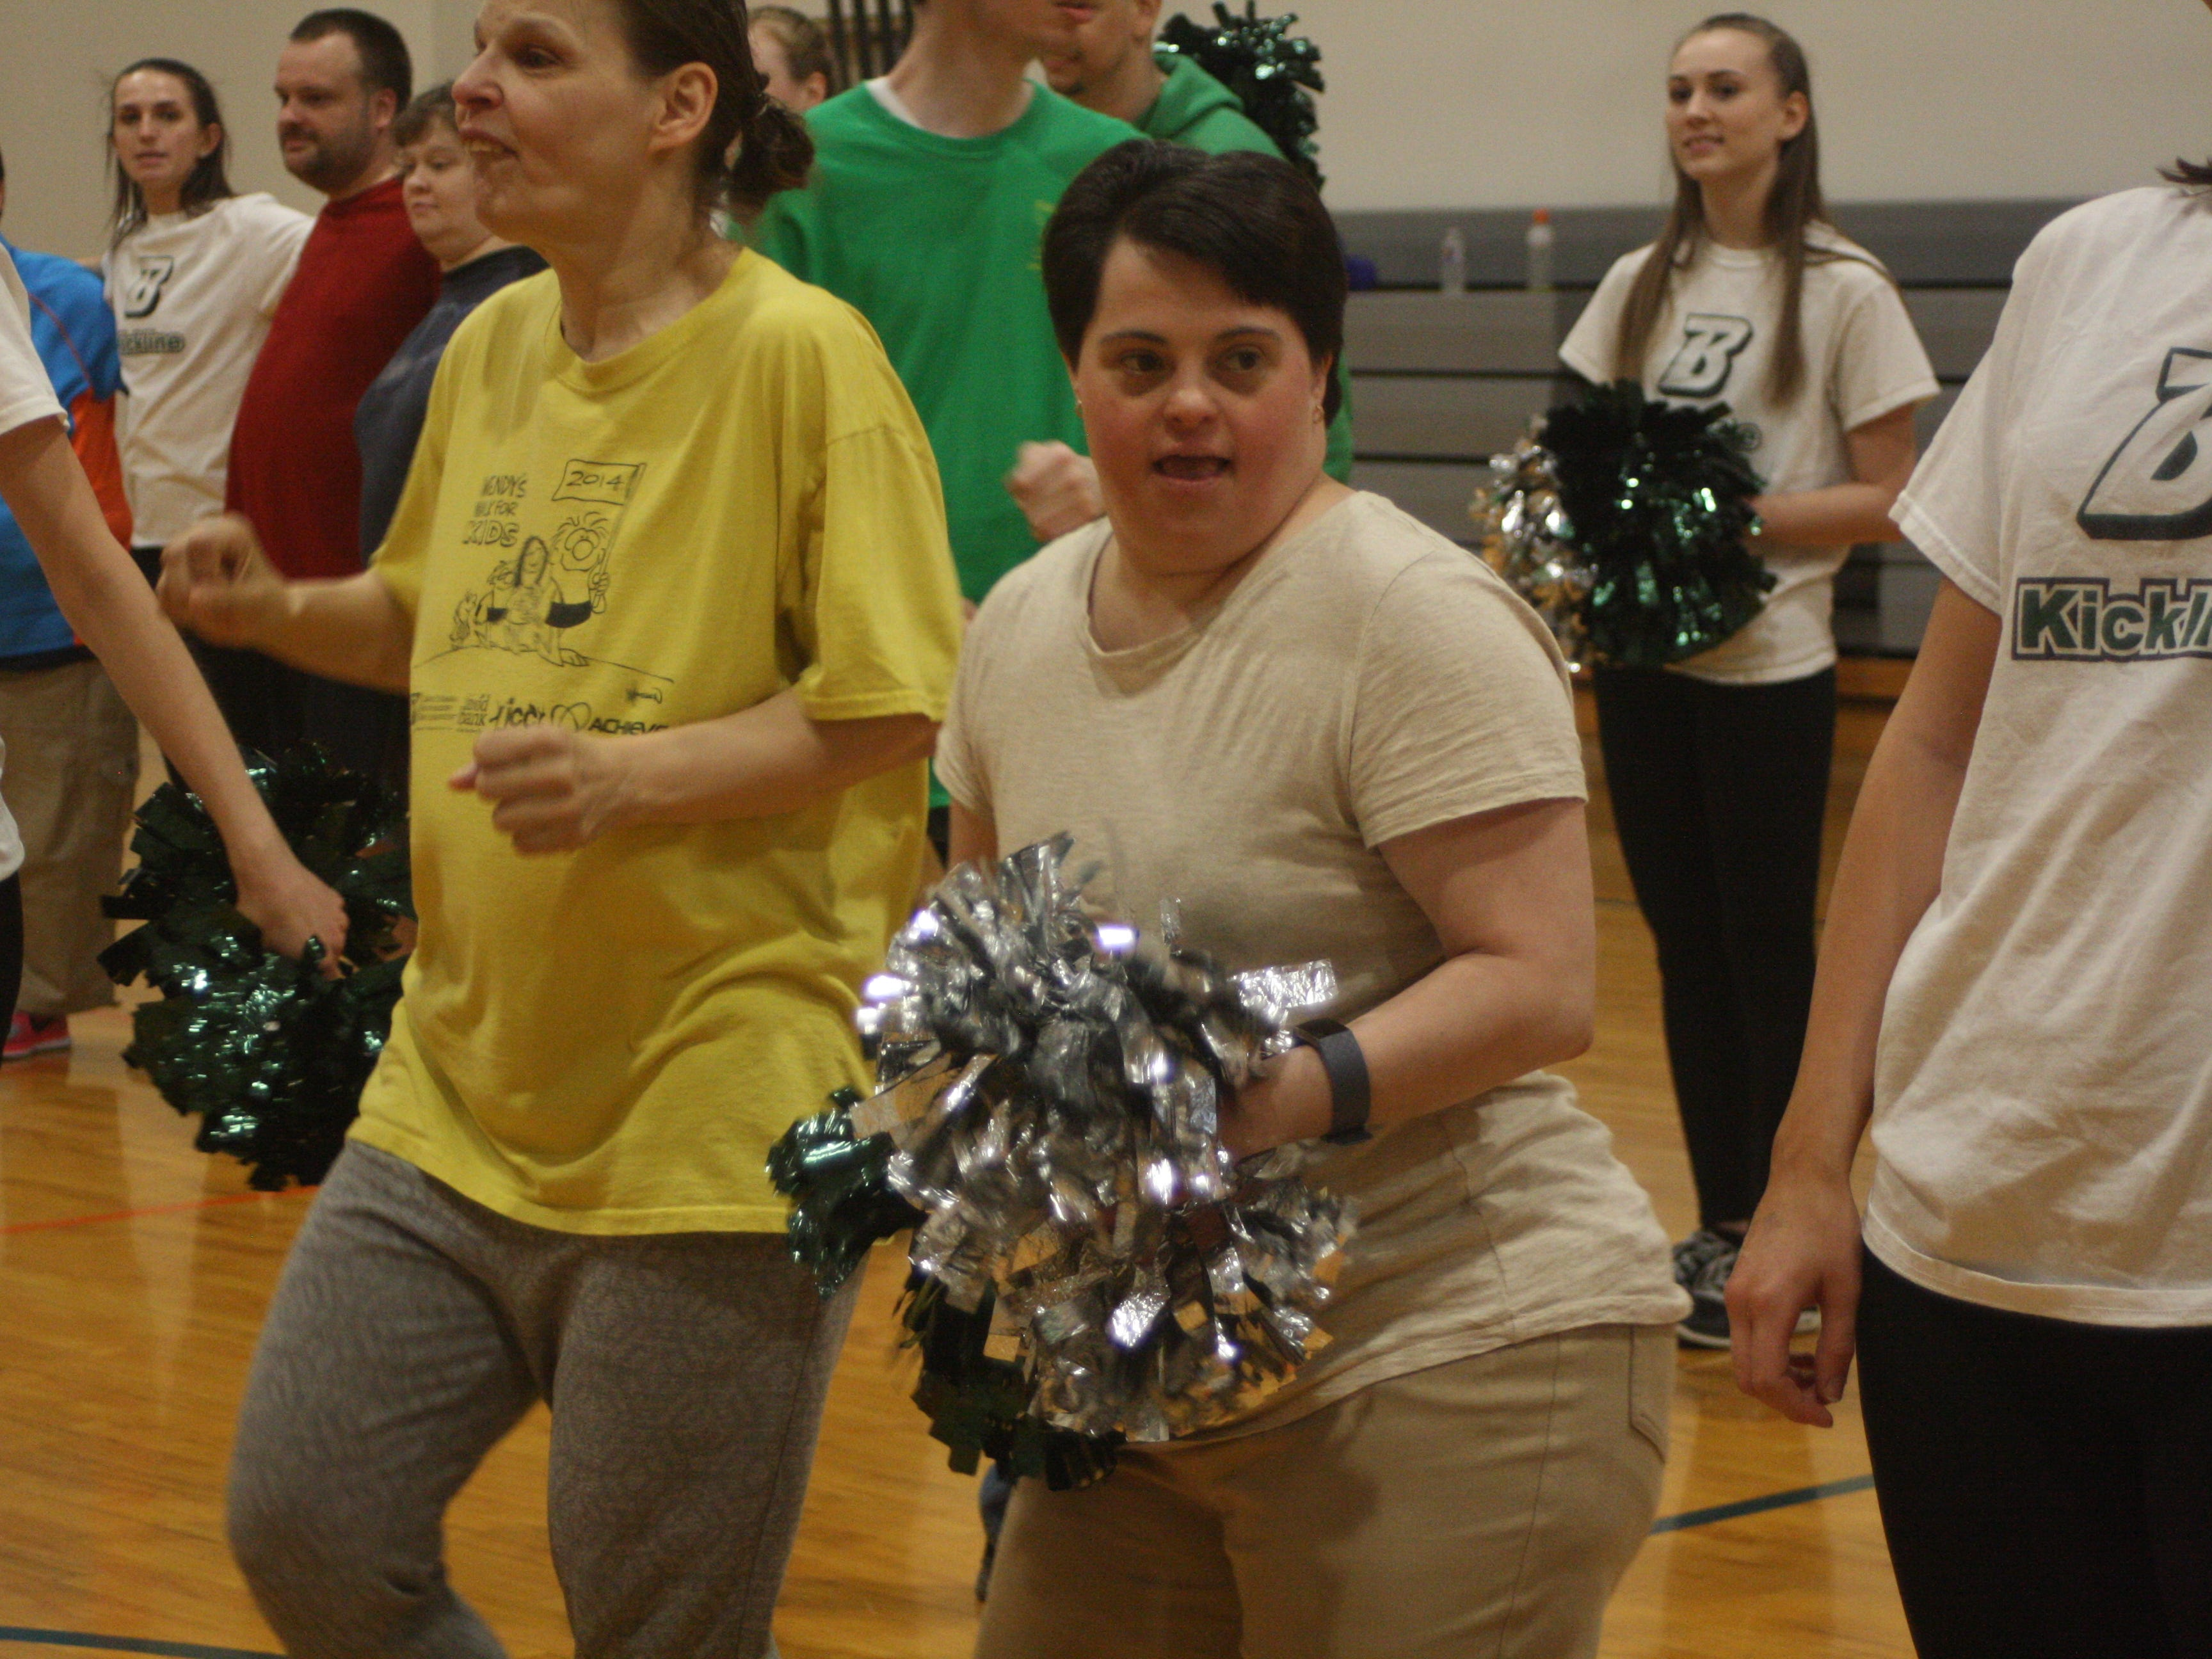 The Special Olympics Vestal Team threw a dance party for Jenny Sorber in honor of her last practice as Head Coach on April 29.